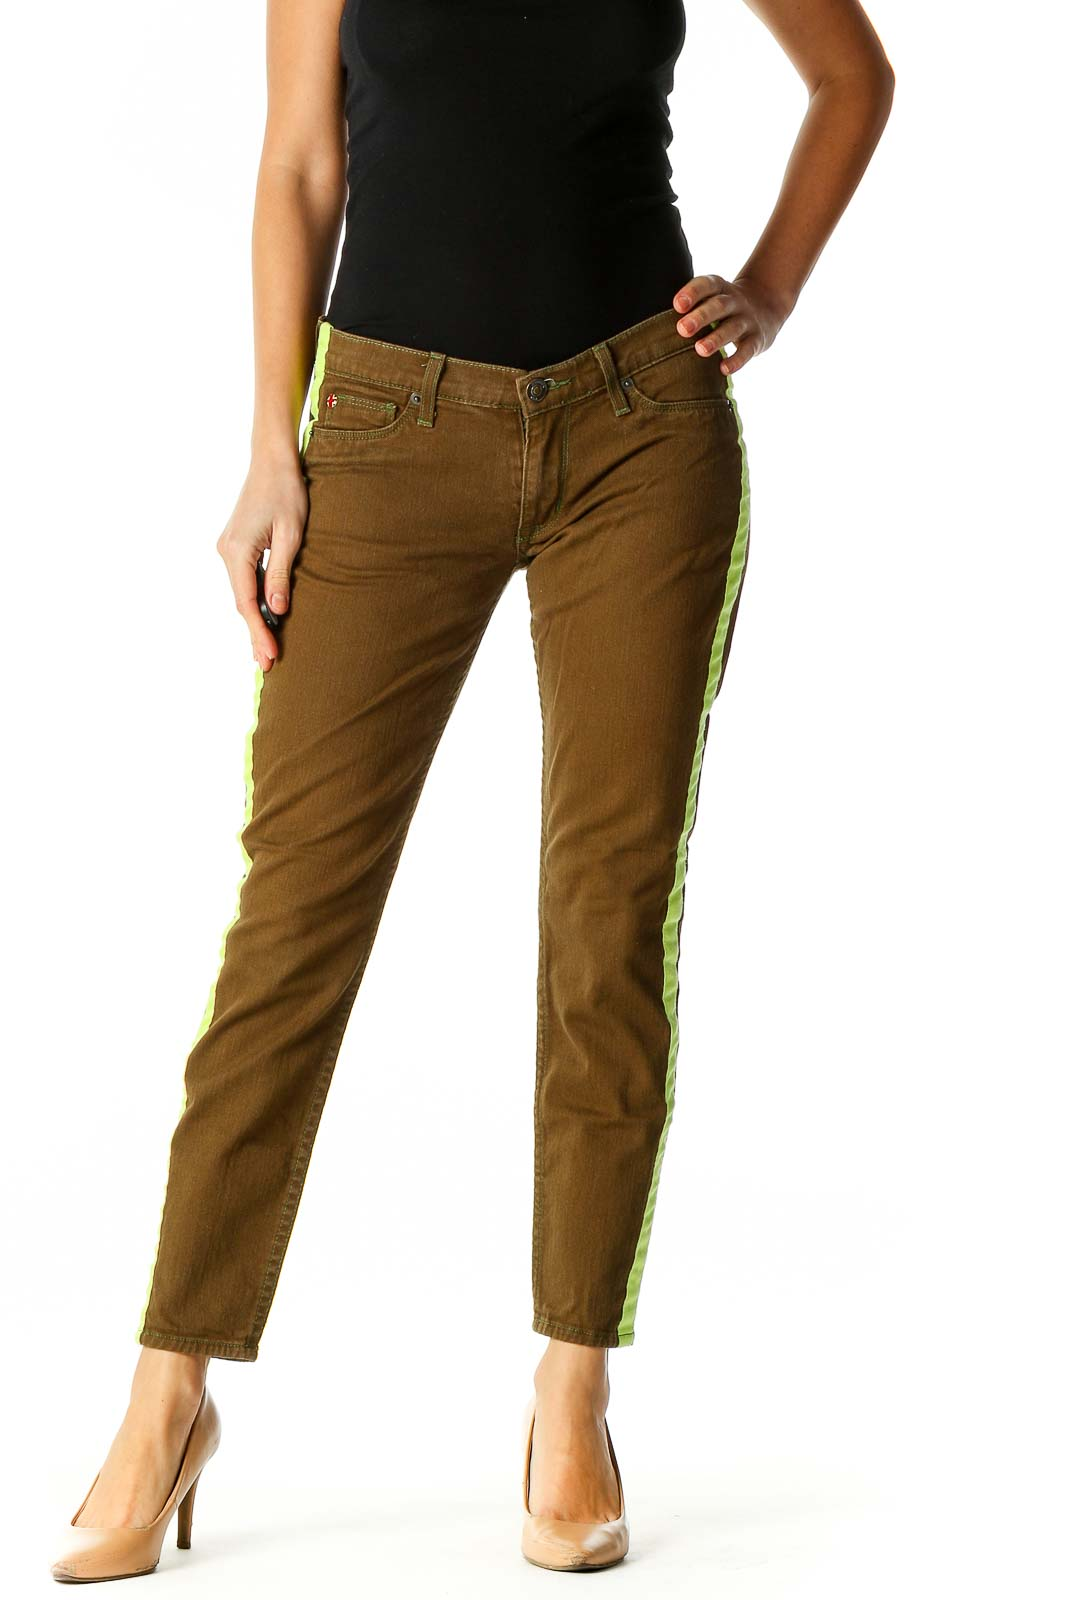 Brown Chic Colorblock All Day Wear Jeans Front